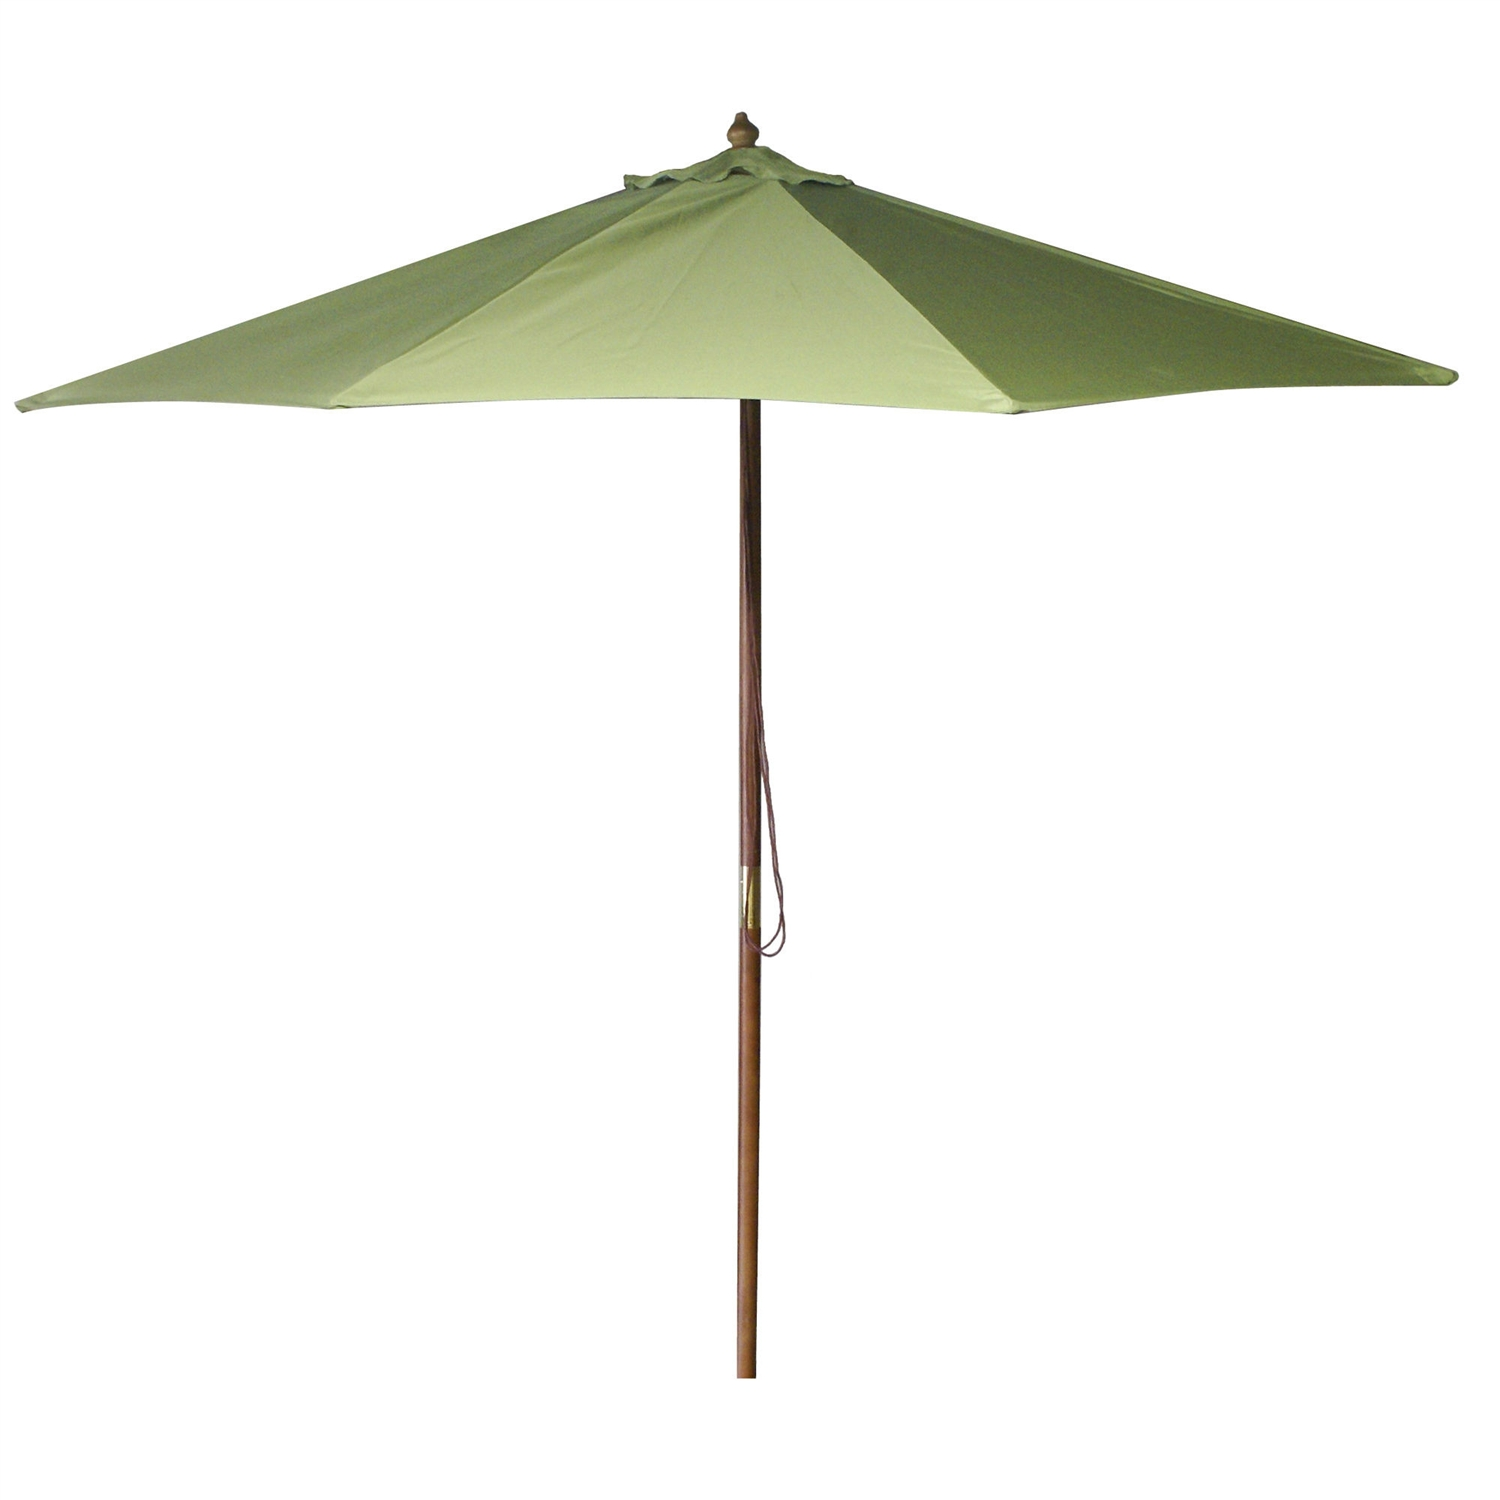 9-Foot Patio / Market Umbrella with Olive Green Canopy, J9WU4309 :  This 9-Foot Patio / Market Umbrella with Olive Green Canopy would be a great addition to your home. We recommend to take inside during extreme weather to avoid damage. To clean use a mild soap and water solution. Not intended for Commercial Use, only warrantied for 500 hours of direct sunlight for commercial use. Maintenance free.